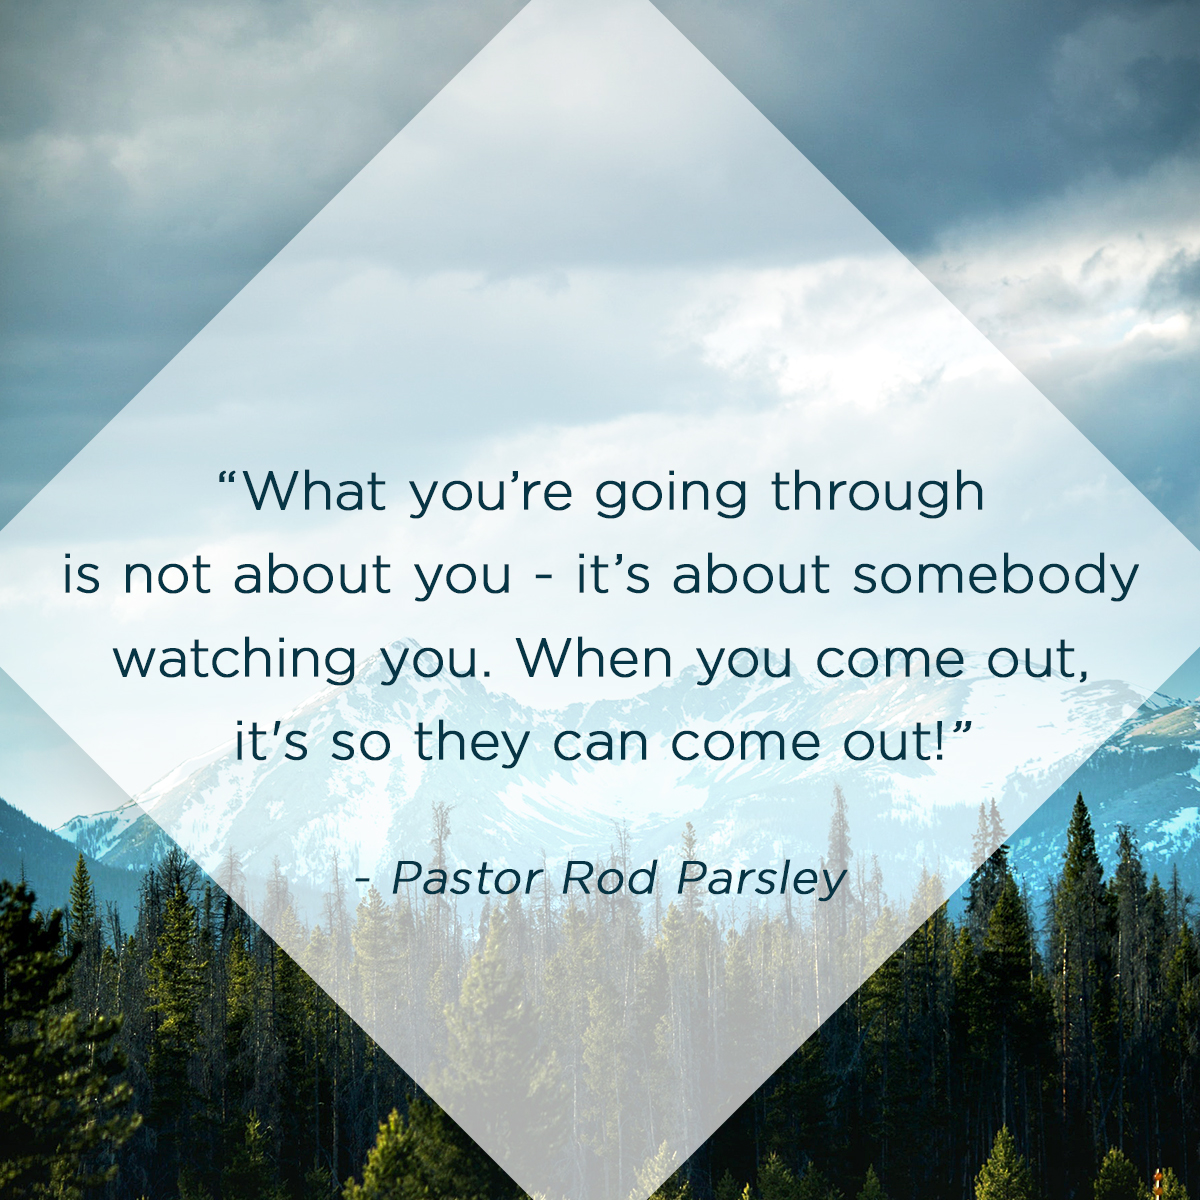 """What you're going through is not about you - it's about somebody watching you. When you come out, it's so they can come out!"" - Pastor Rod Parsley"